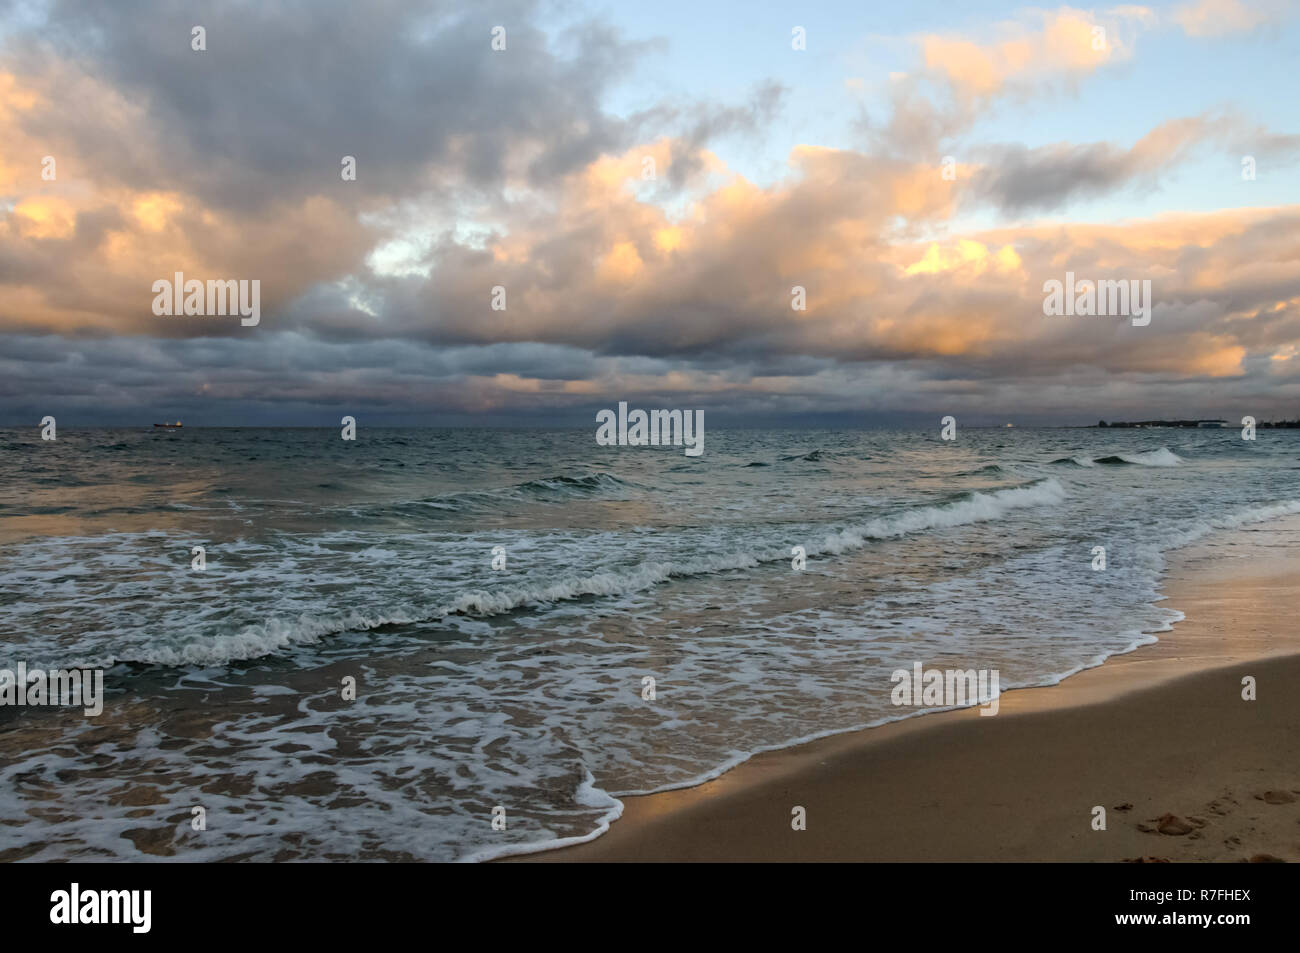 Baltic Sea, Gdańsk, Poland, water, waves, beach, sunsets, clouds, whirling clouds - Stock Image